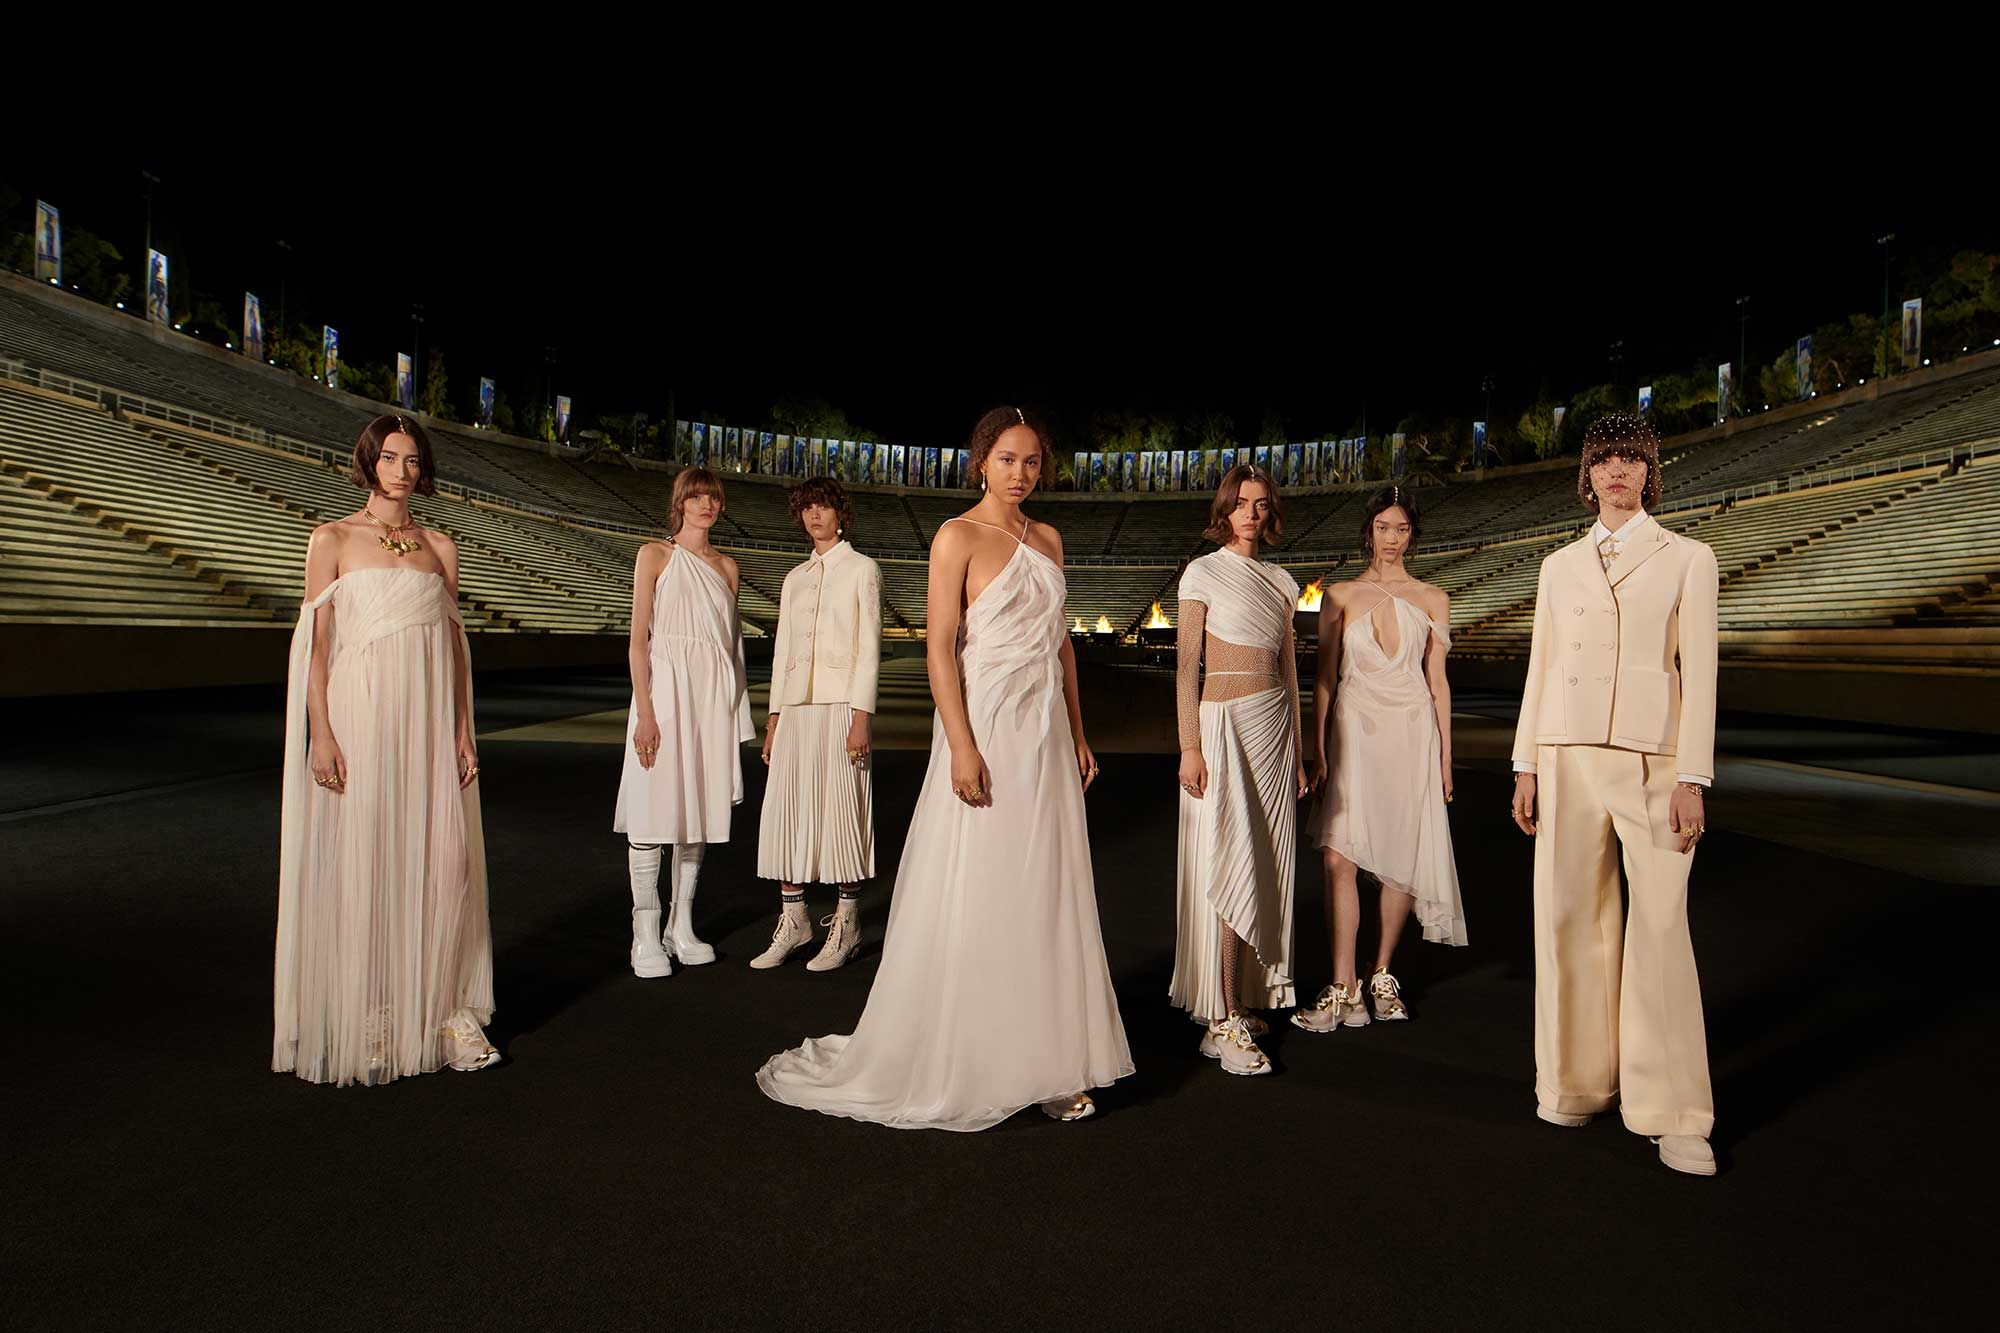 5 Things We Loved About Dior's Olympics-Inspired Cruise 2022 Show